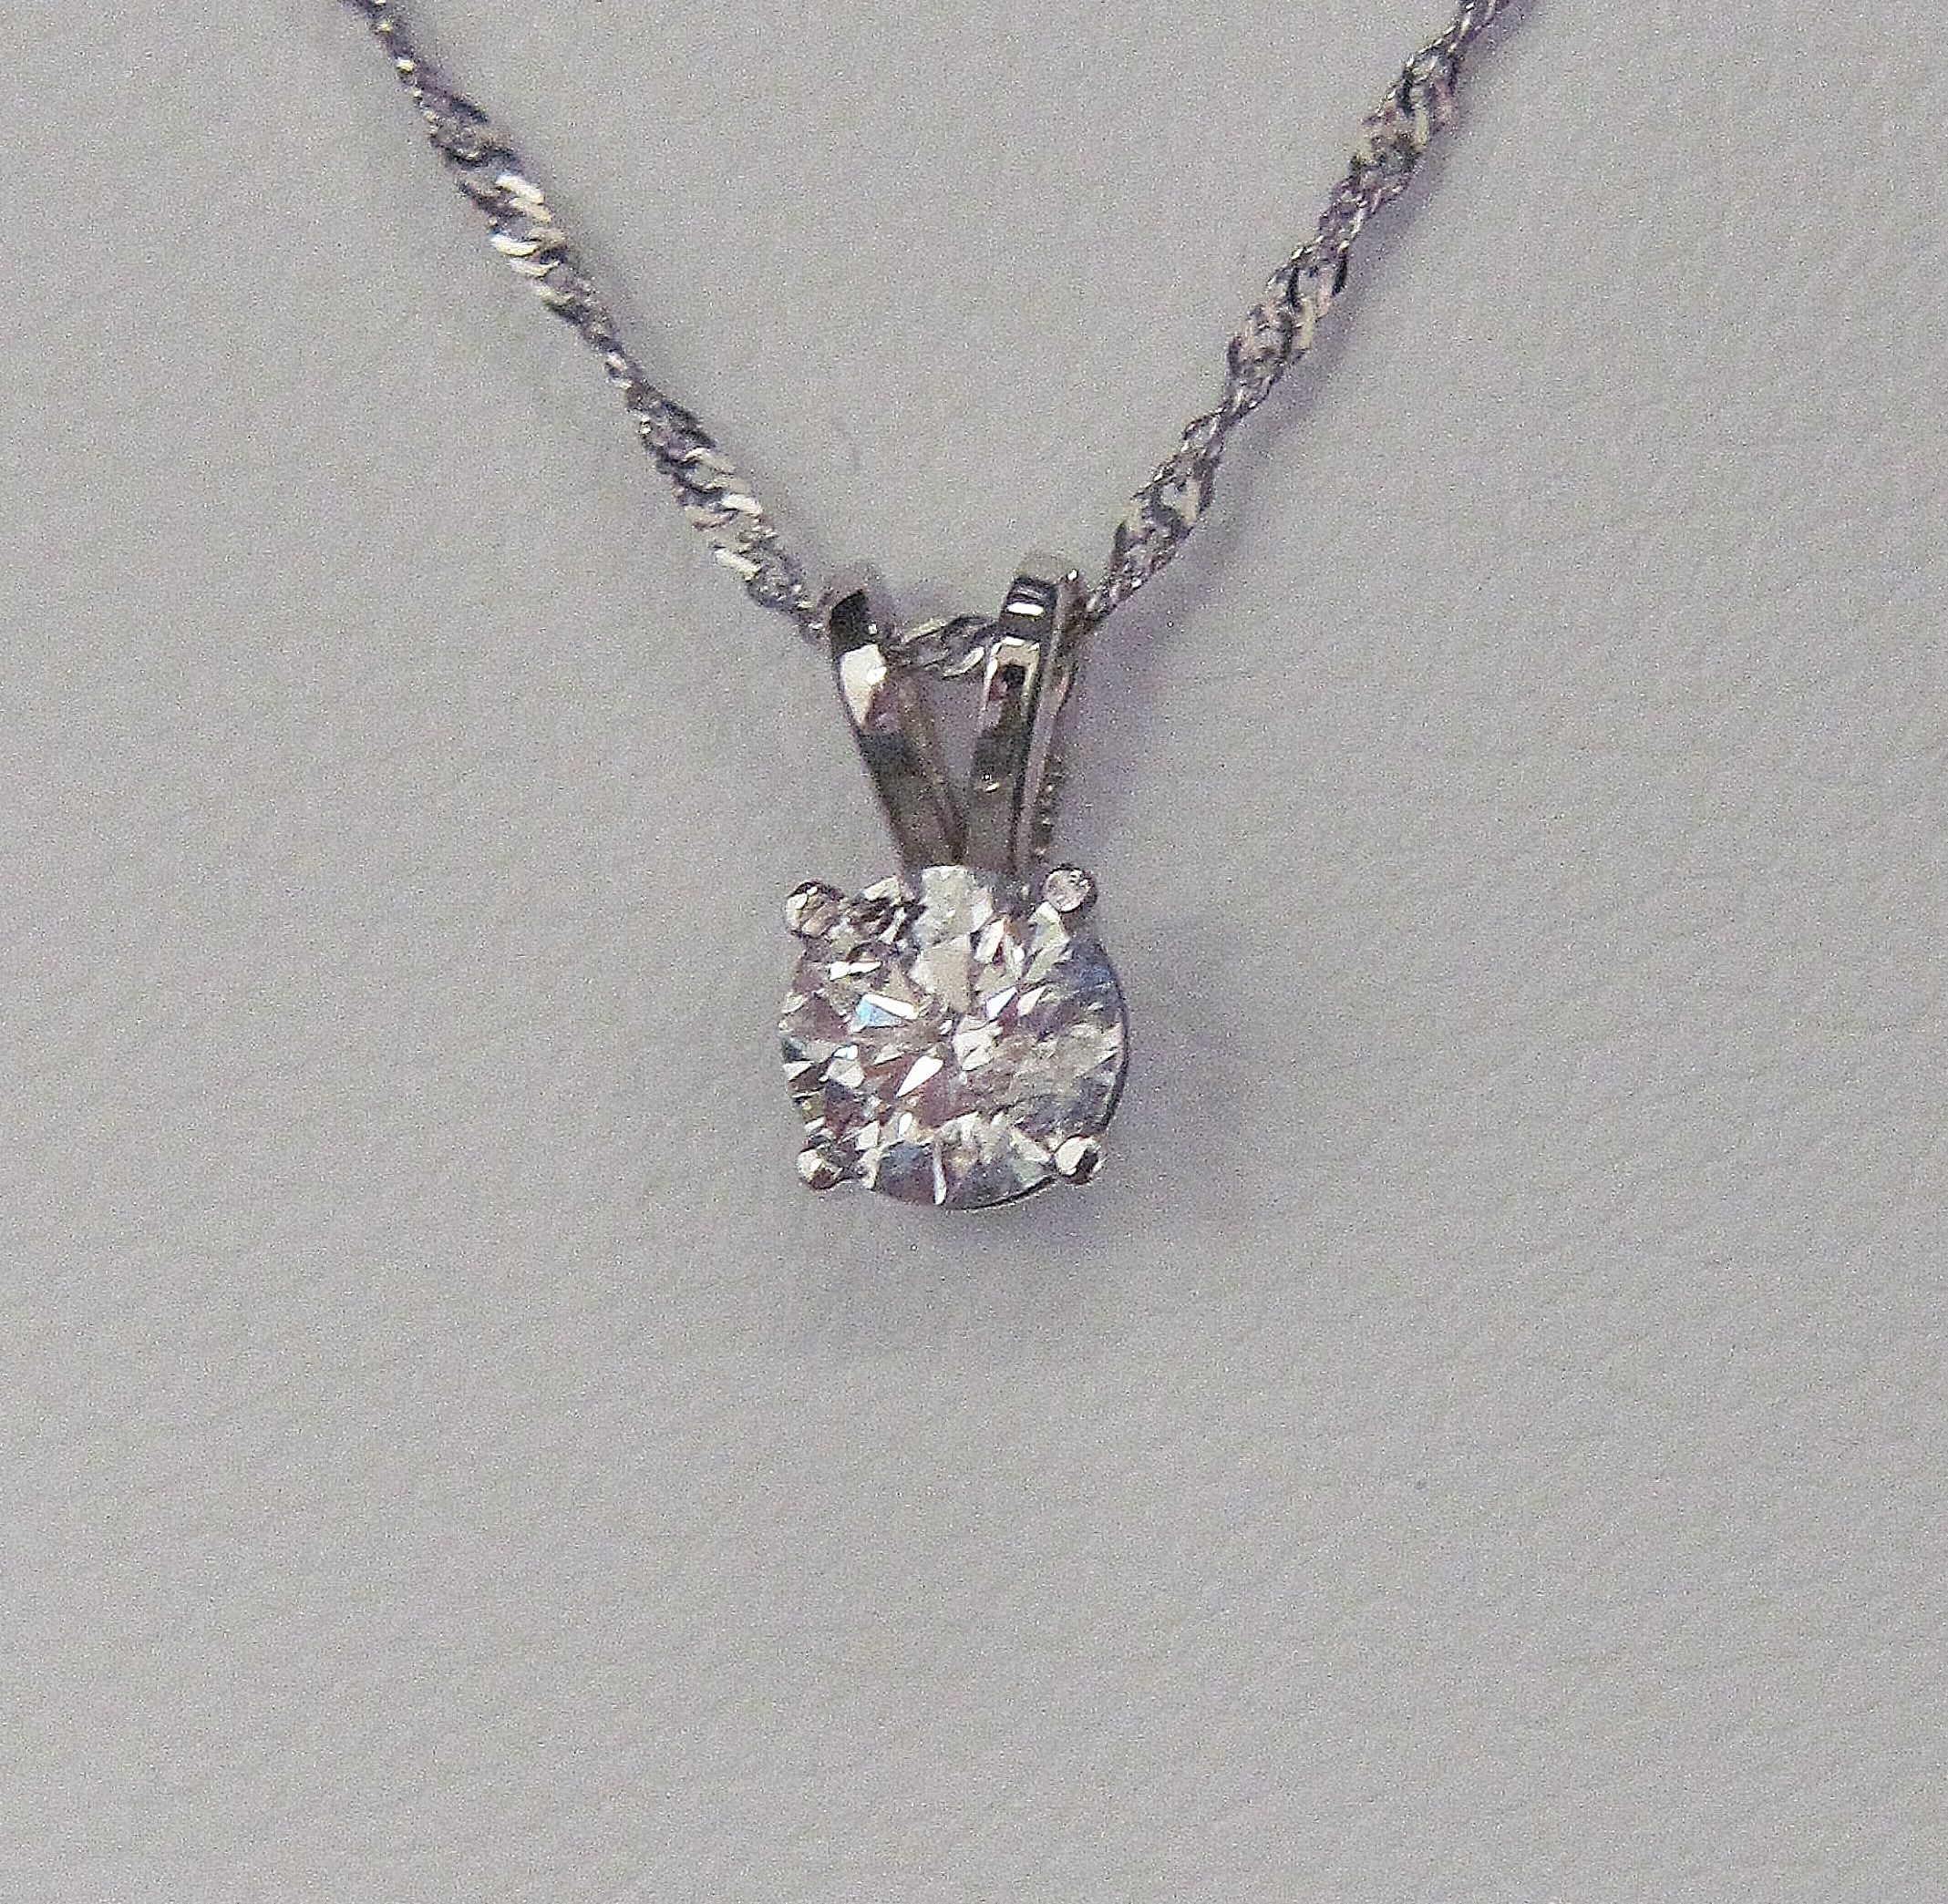 necklace p gold carat cut diamond jenny white brilliant weight packham total